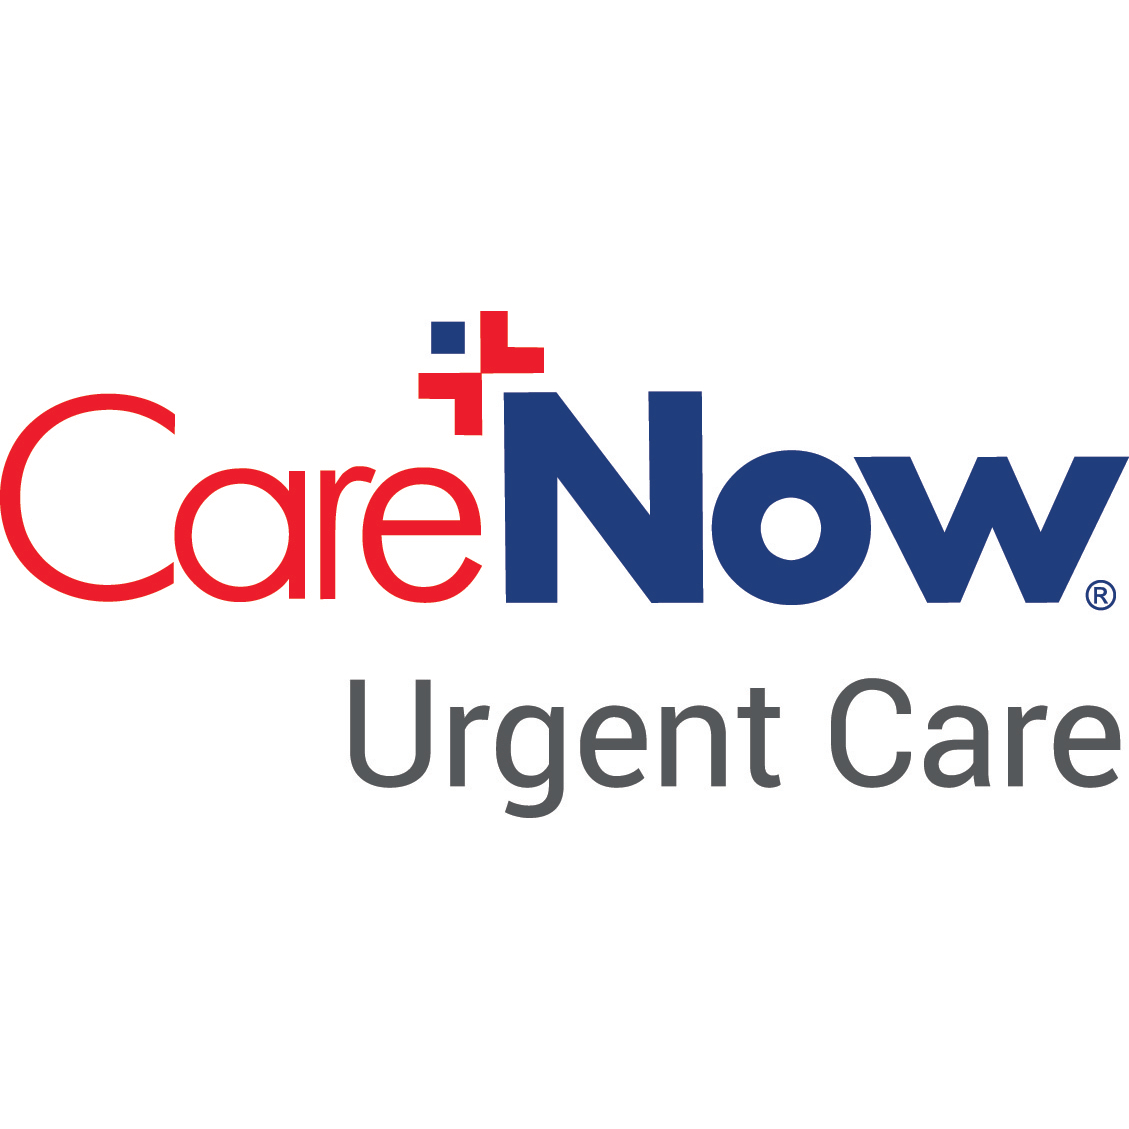 CareNow Urgent Care - Tropicana & Jones - Las Vegas, NV - Emergency Medicine